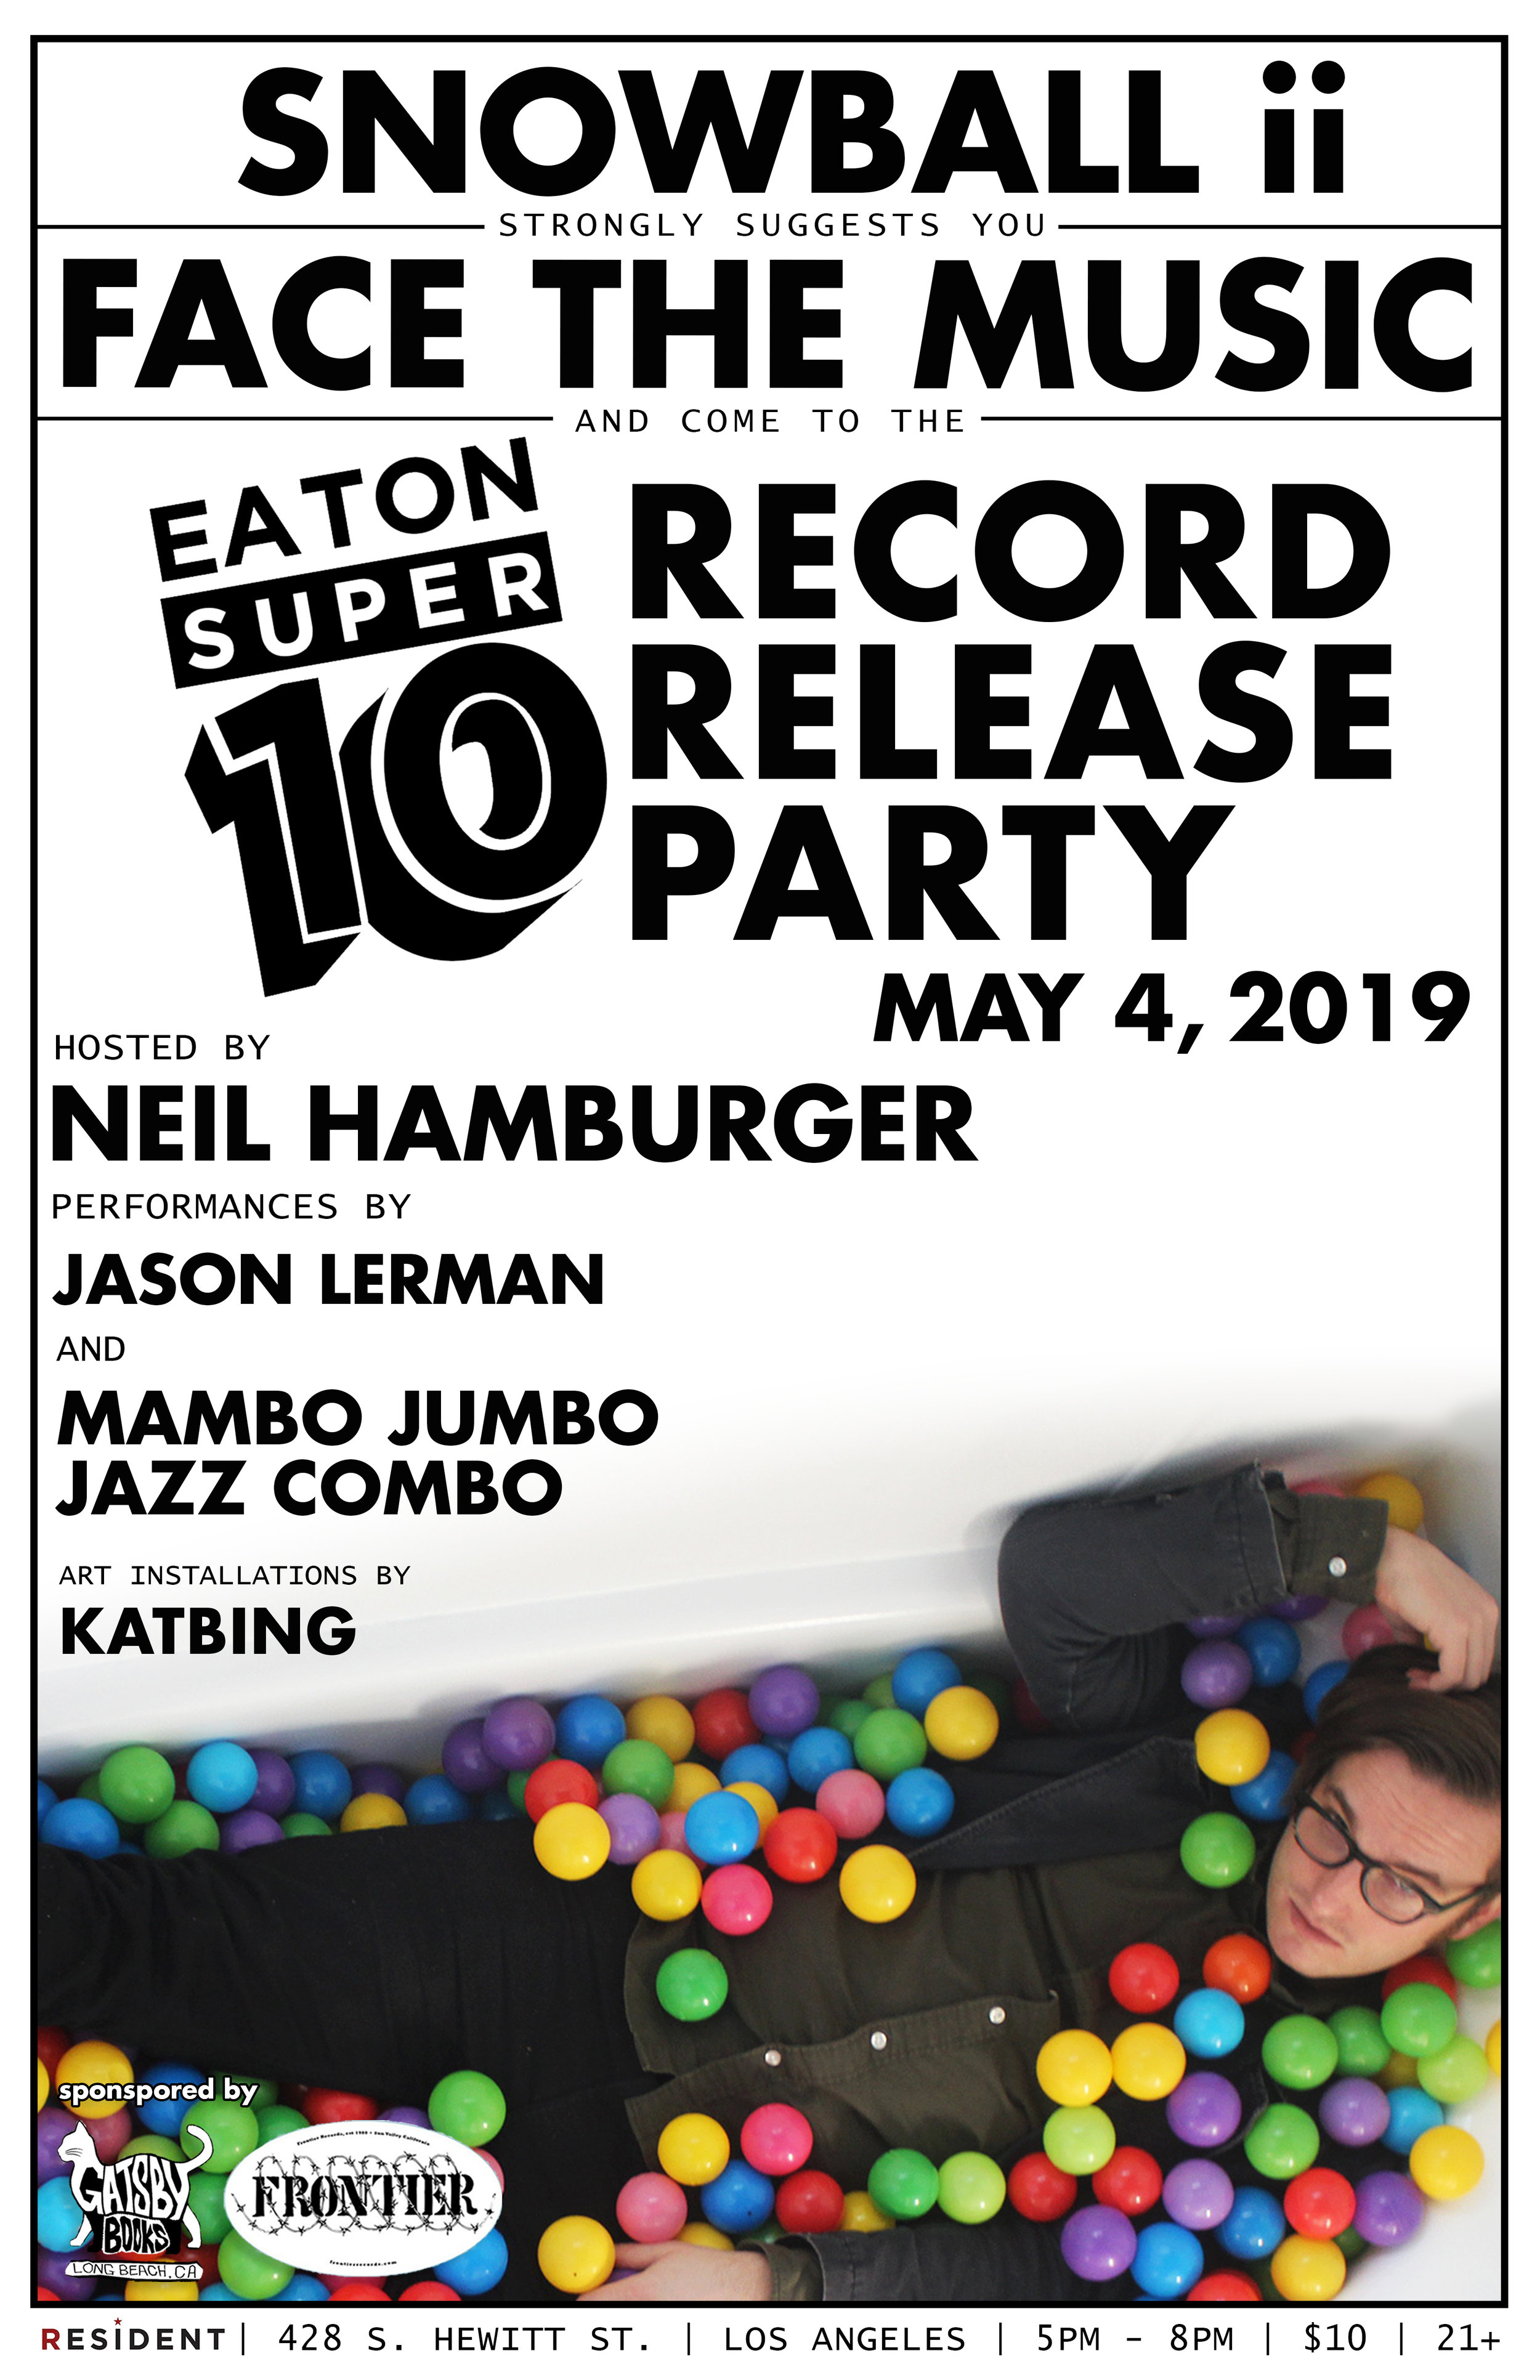 Eaton Super 10 Record Release Show Flyer.jpg